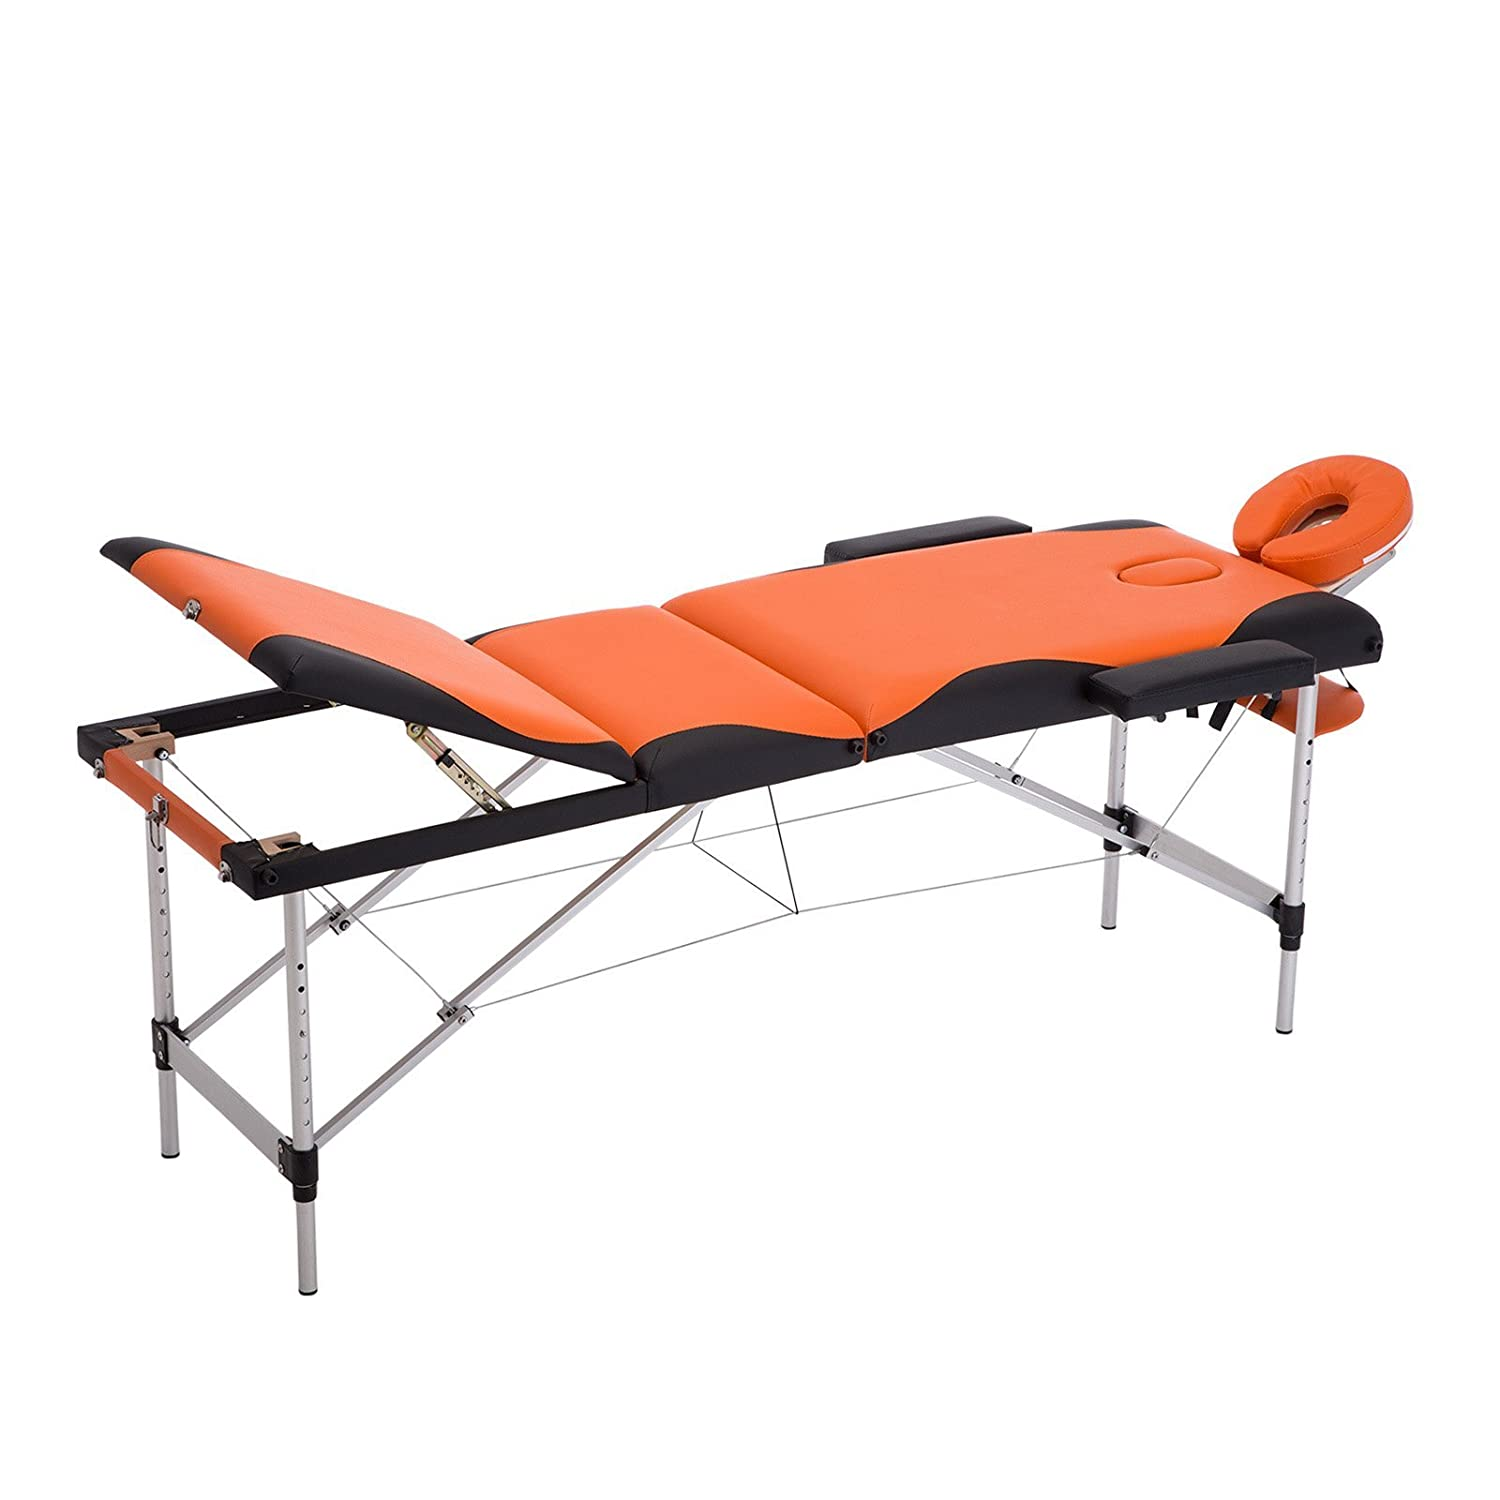 Uenjoy Folding Massage Table 84'' Professional Massage Bed Luxury-Model With Carrying Bag & Additional Accessories 3 Fold, Blue